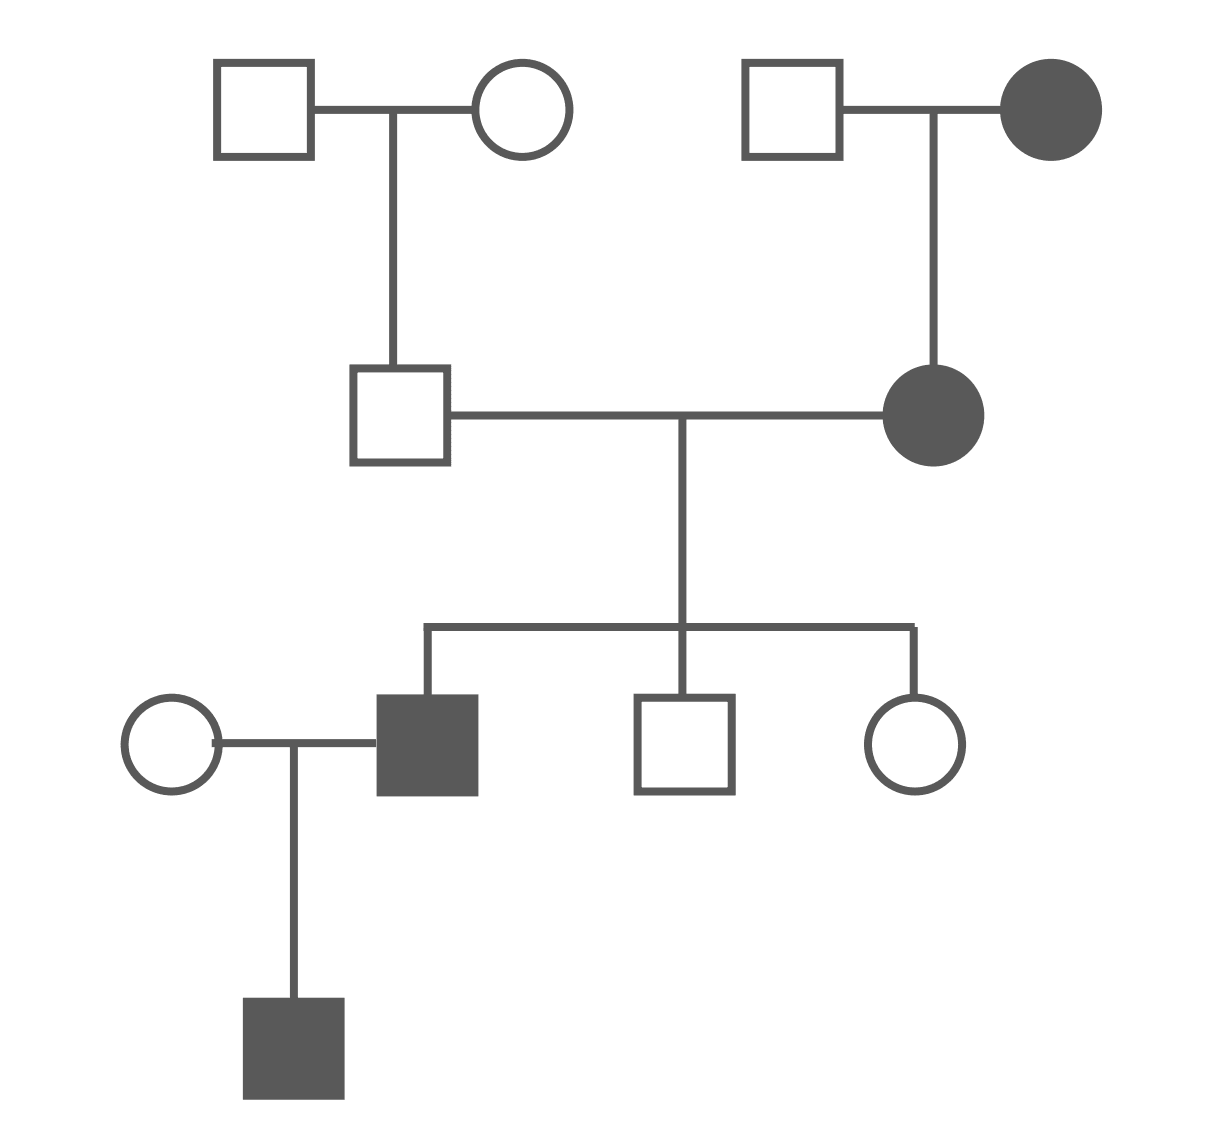 Autosomal Dominant Pedigree Chart SimpleMed